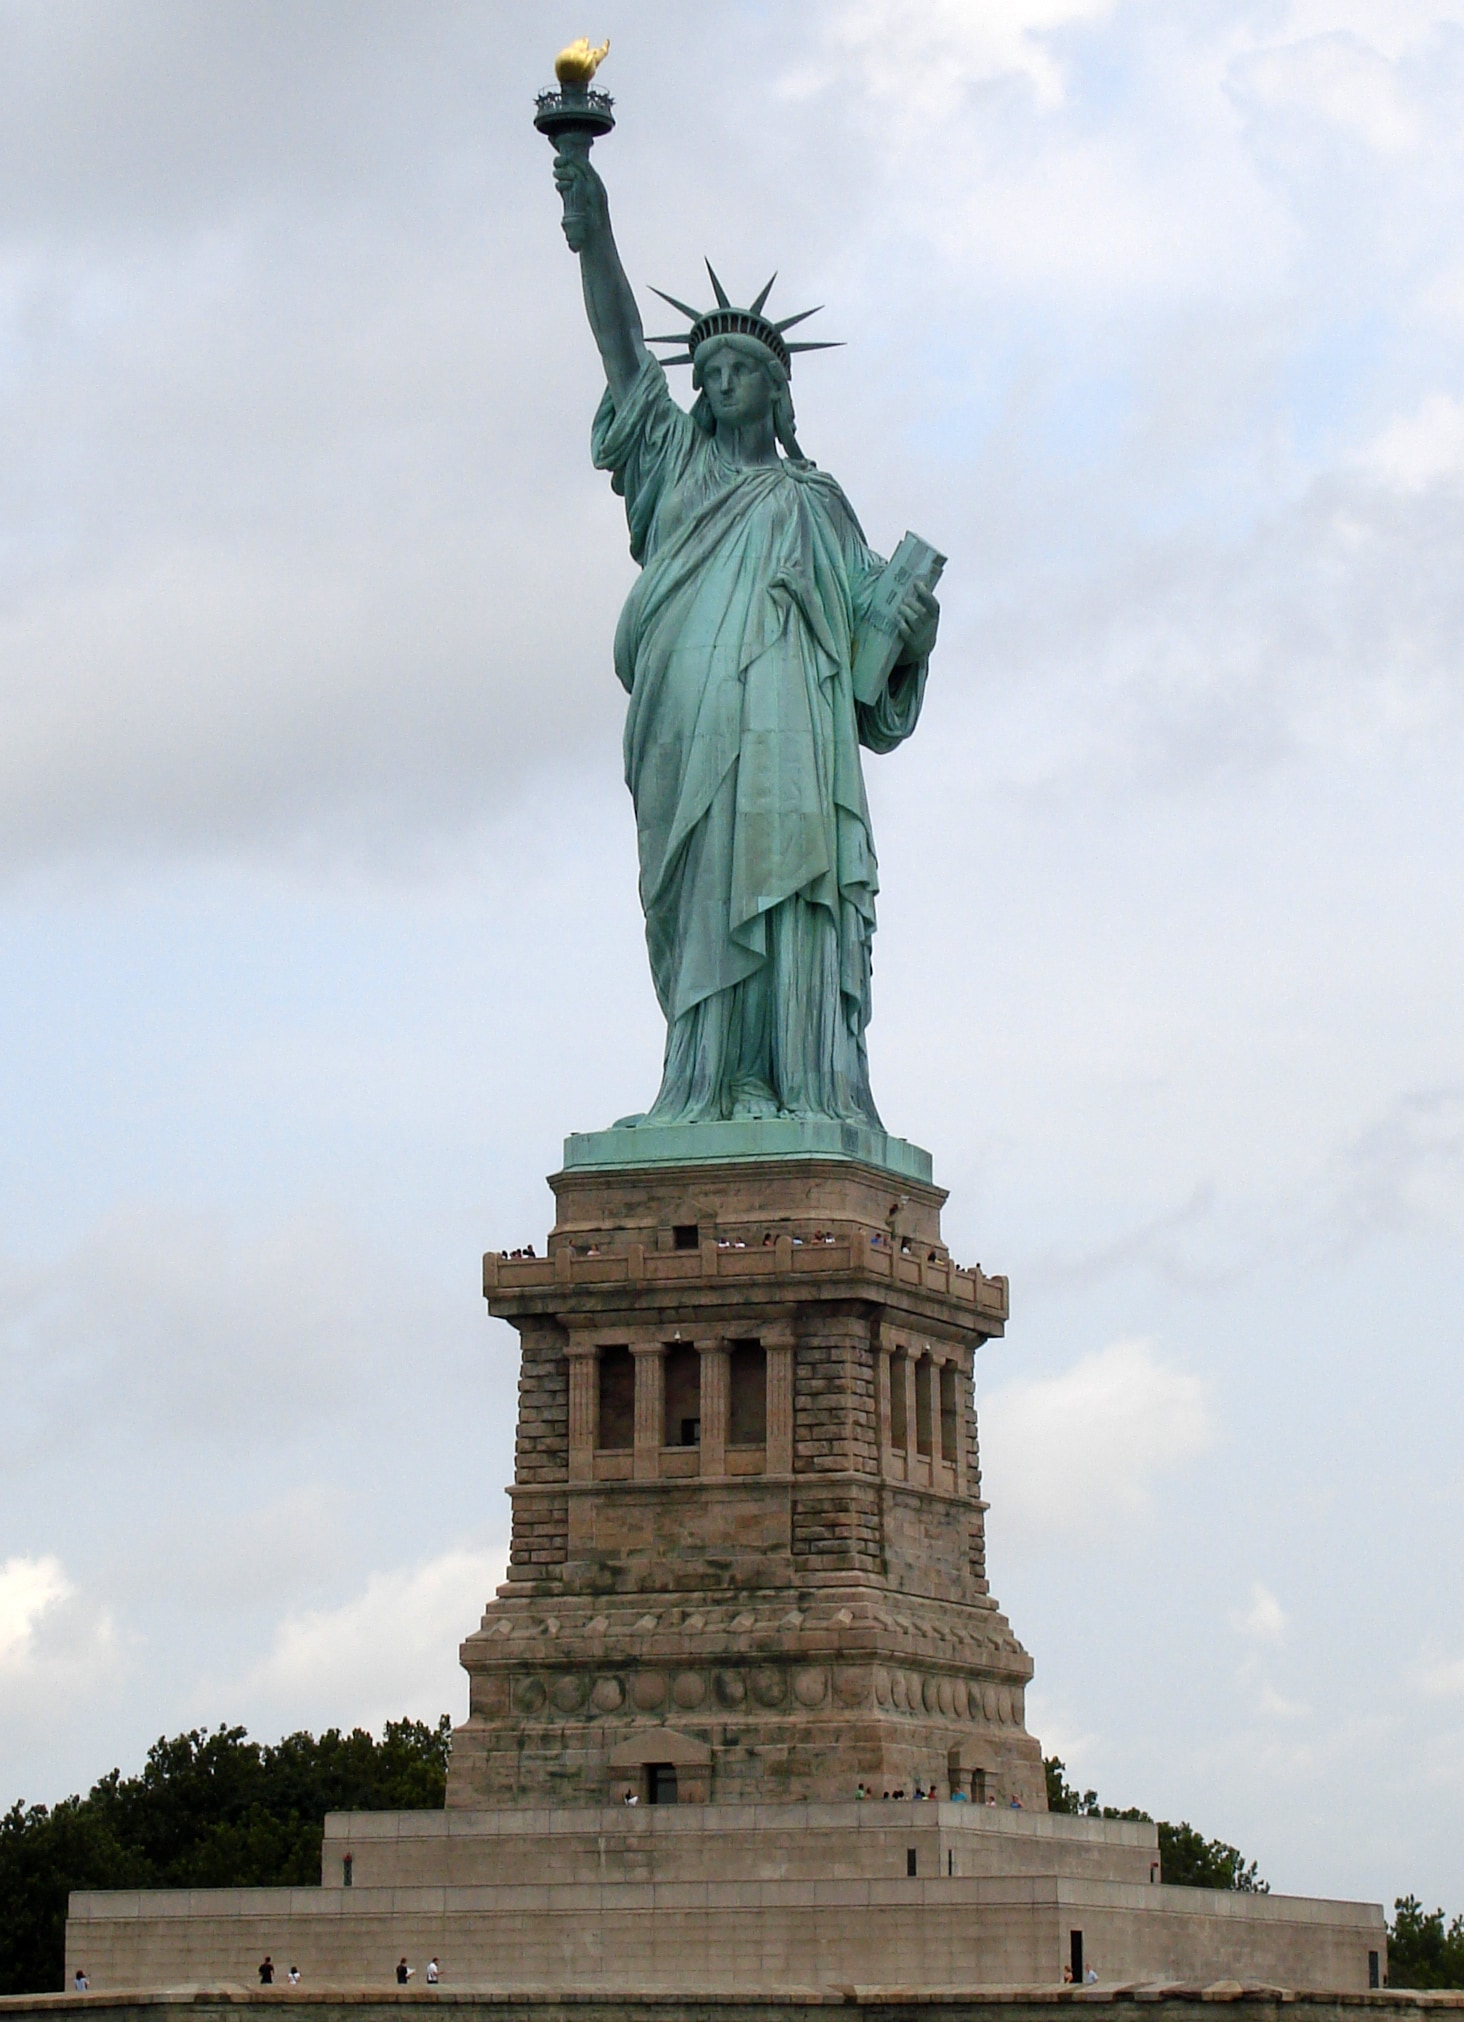 Statue of Liberty, US: The statue is the fourth tallest statue in the world, with a height of 93 metres.   Wikipedia